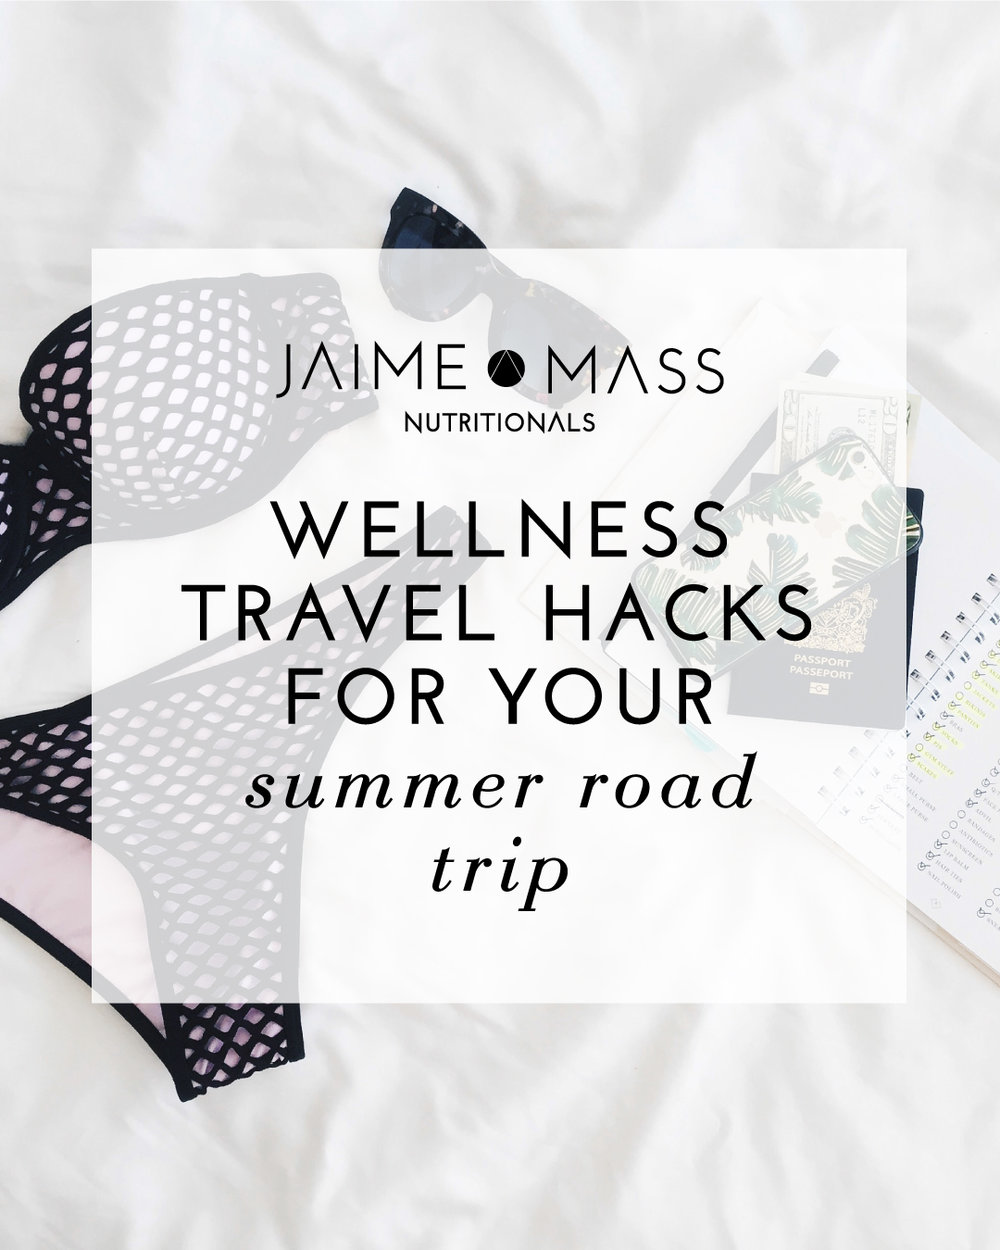 Wellness travel hacks for your summer road trip